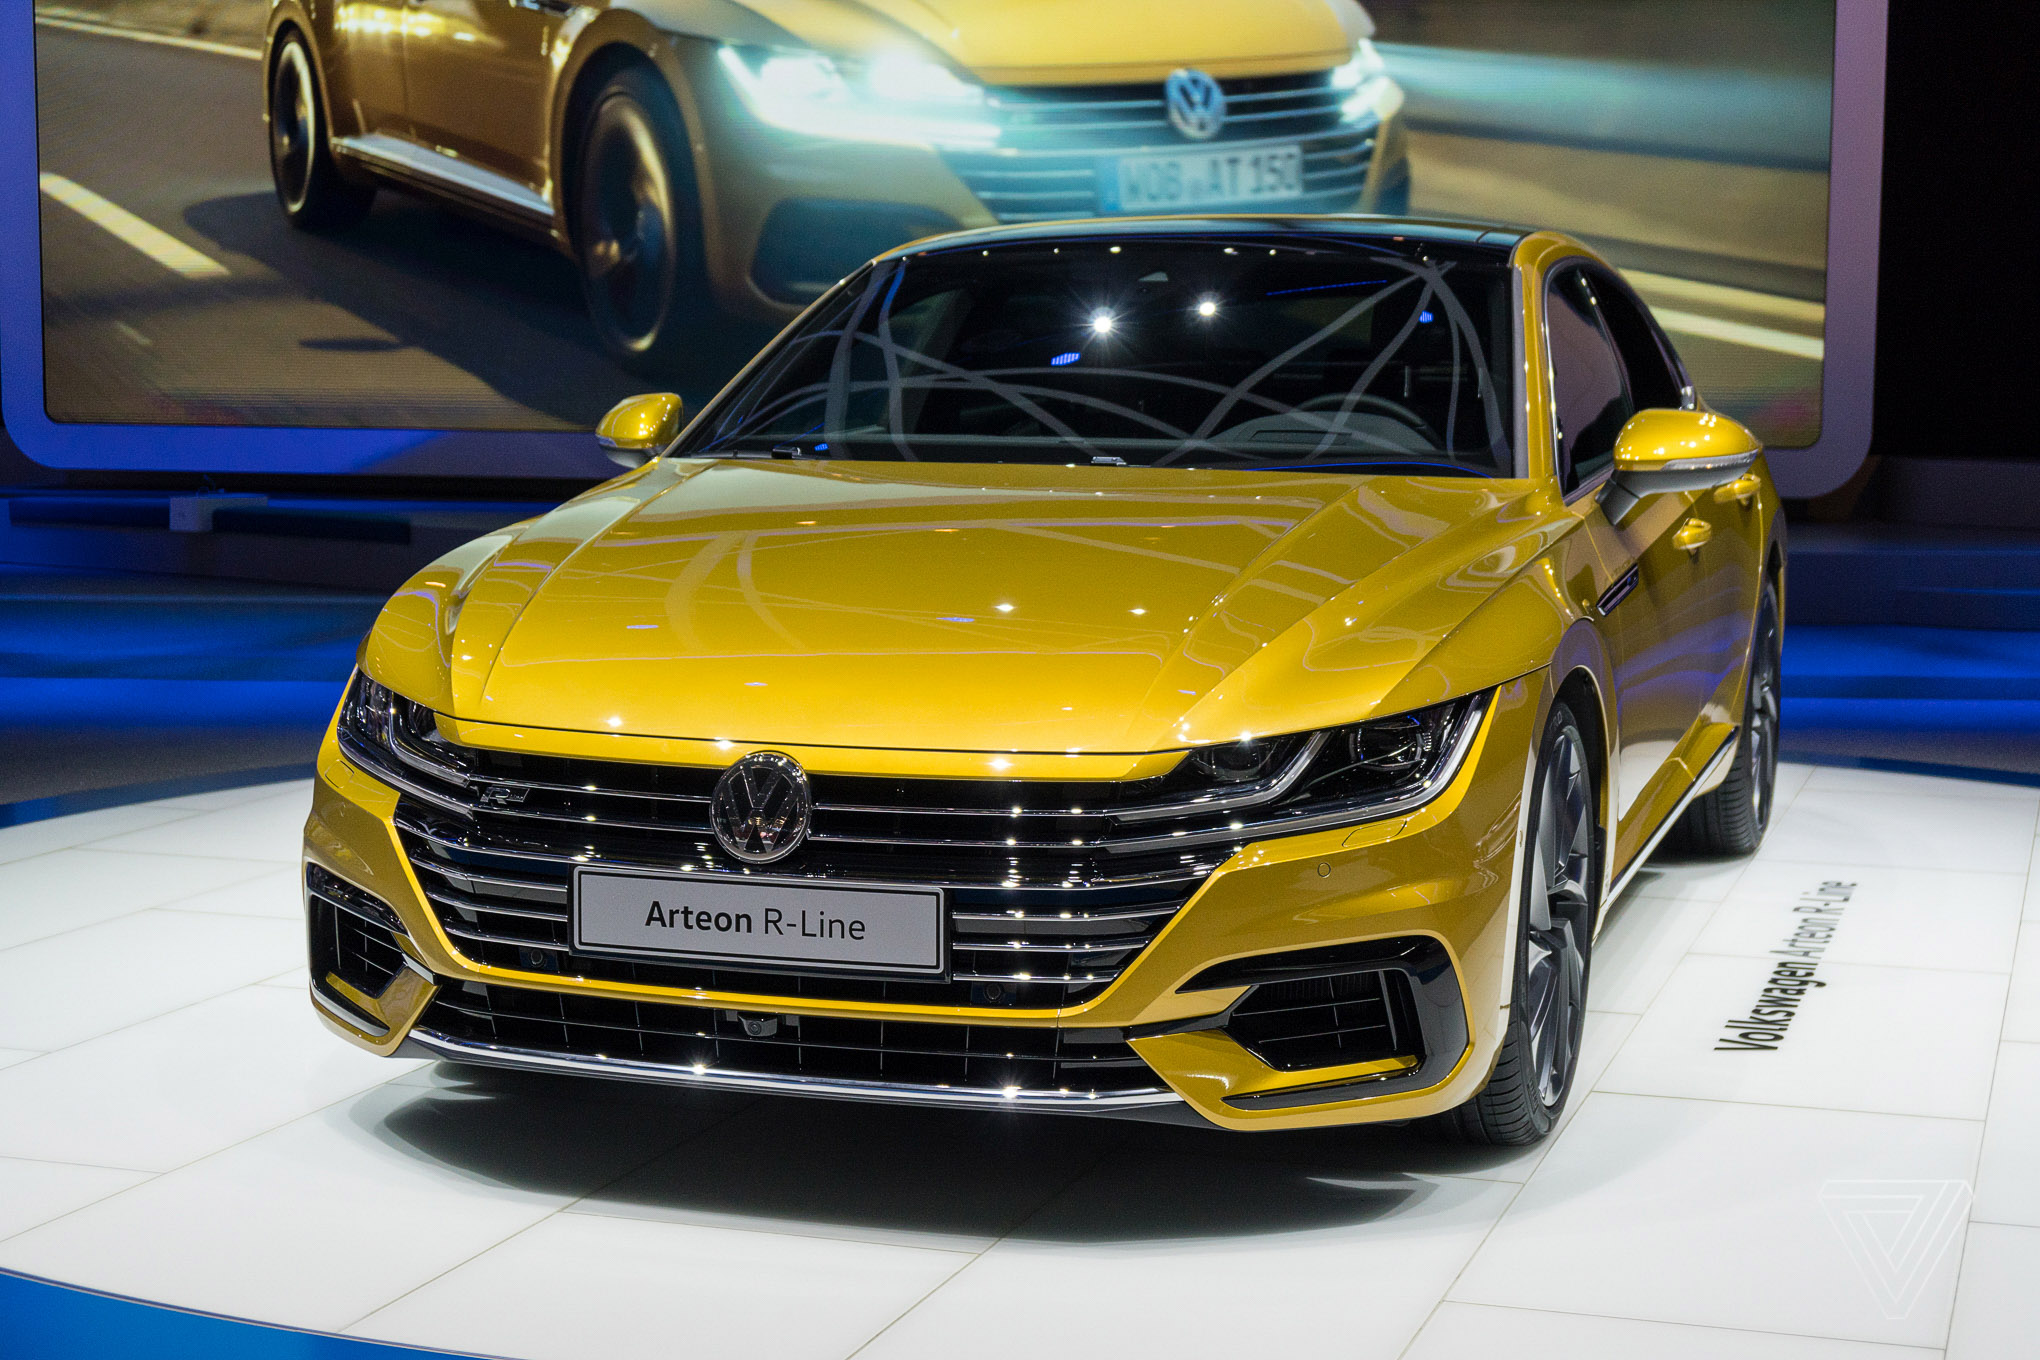 roofline of the arteon all speak to audis pedigree of appealing to a younger audience with a taste for more aggressive looking and performing cars